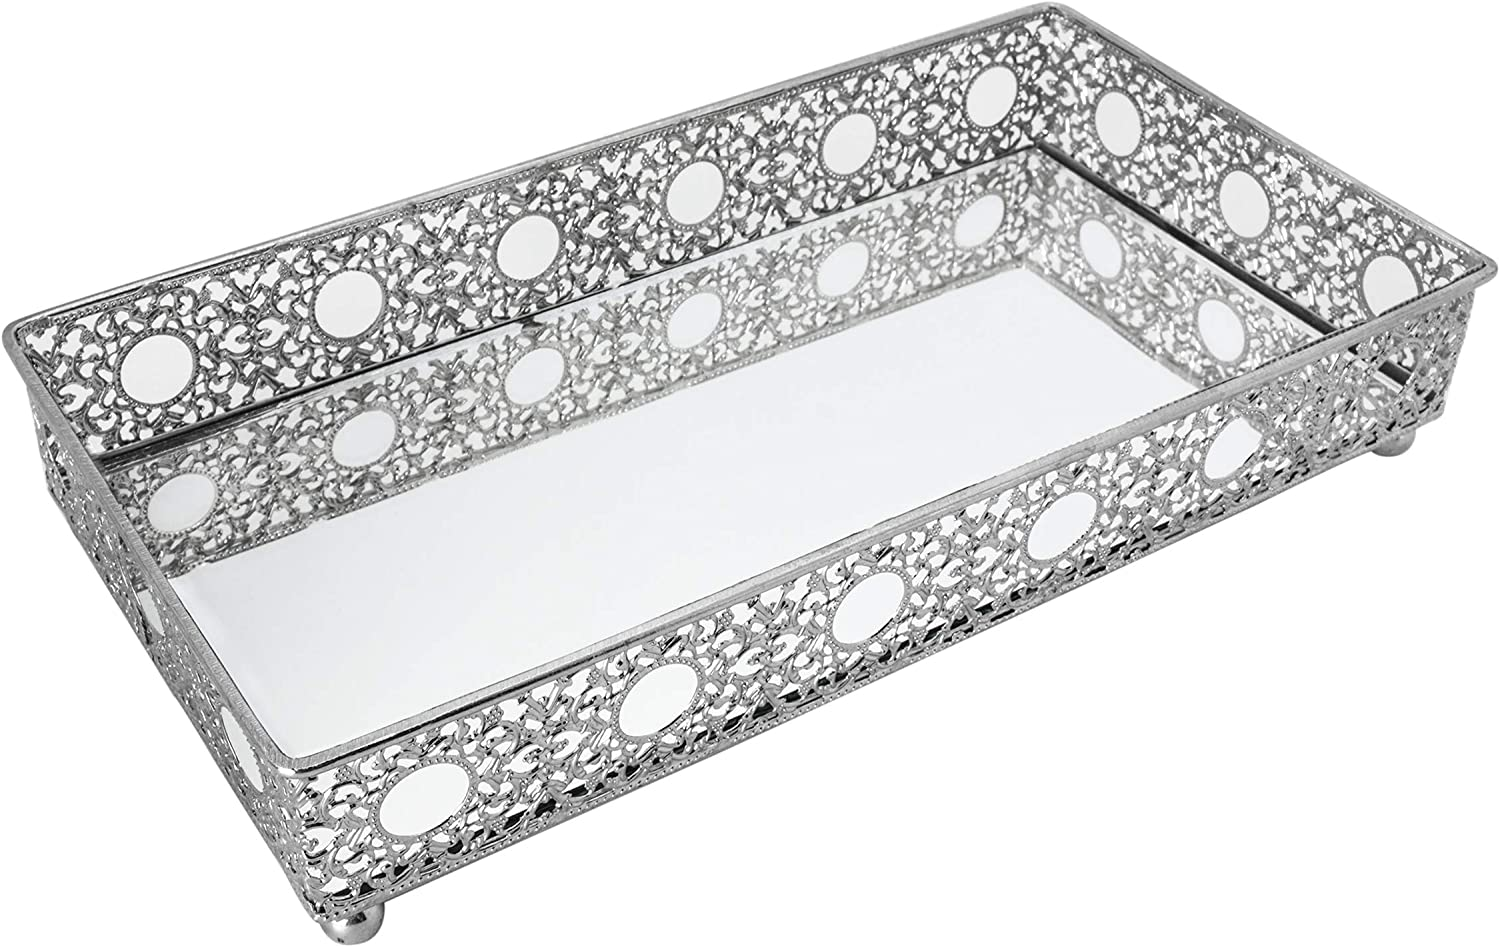 Buy Bathroom Vanity Tray Decorative Tray Mirror Tray Perfume Collection Tray Candle Tray Online In Indonesia B07rmwcrrx